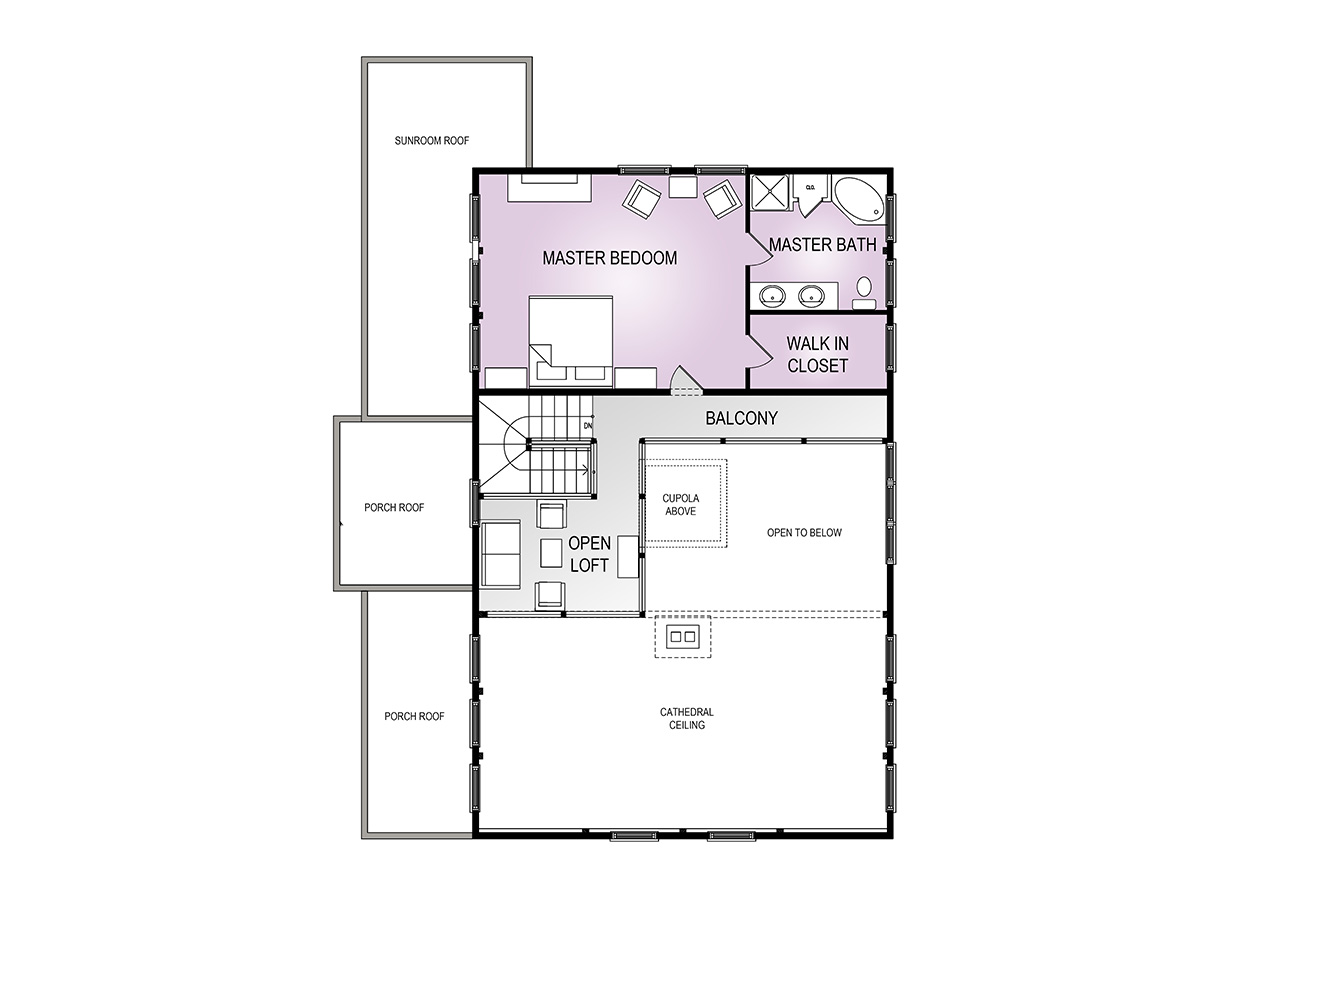 Homestead-loft-plan.jpg